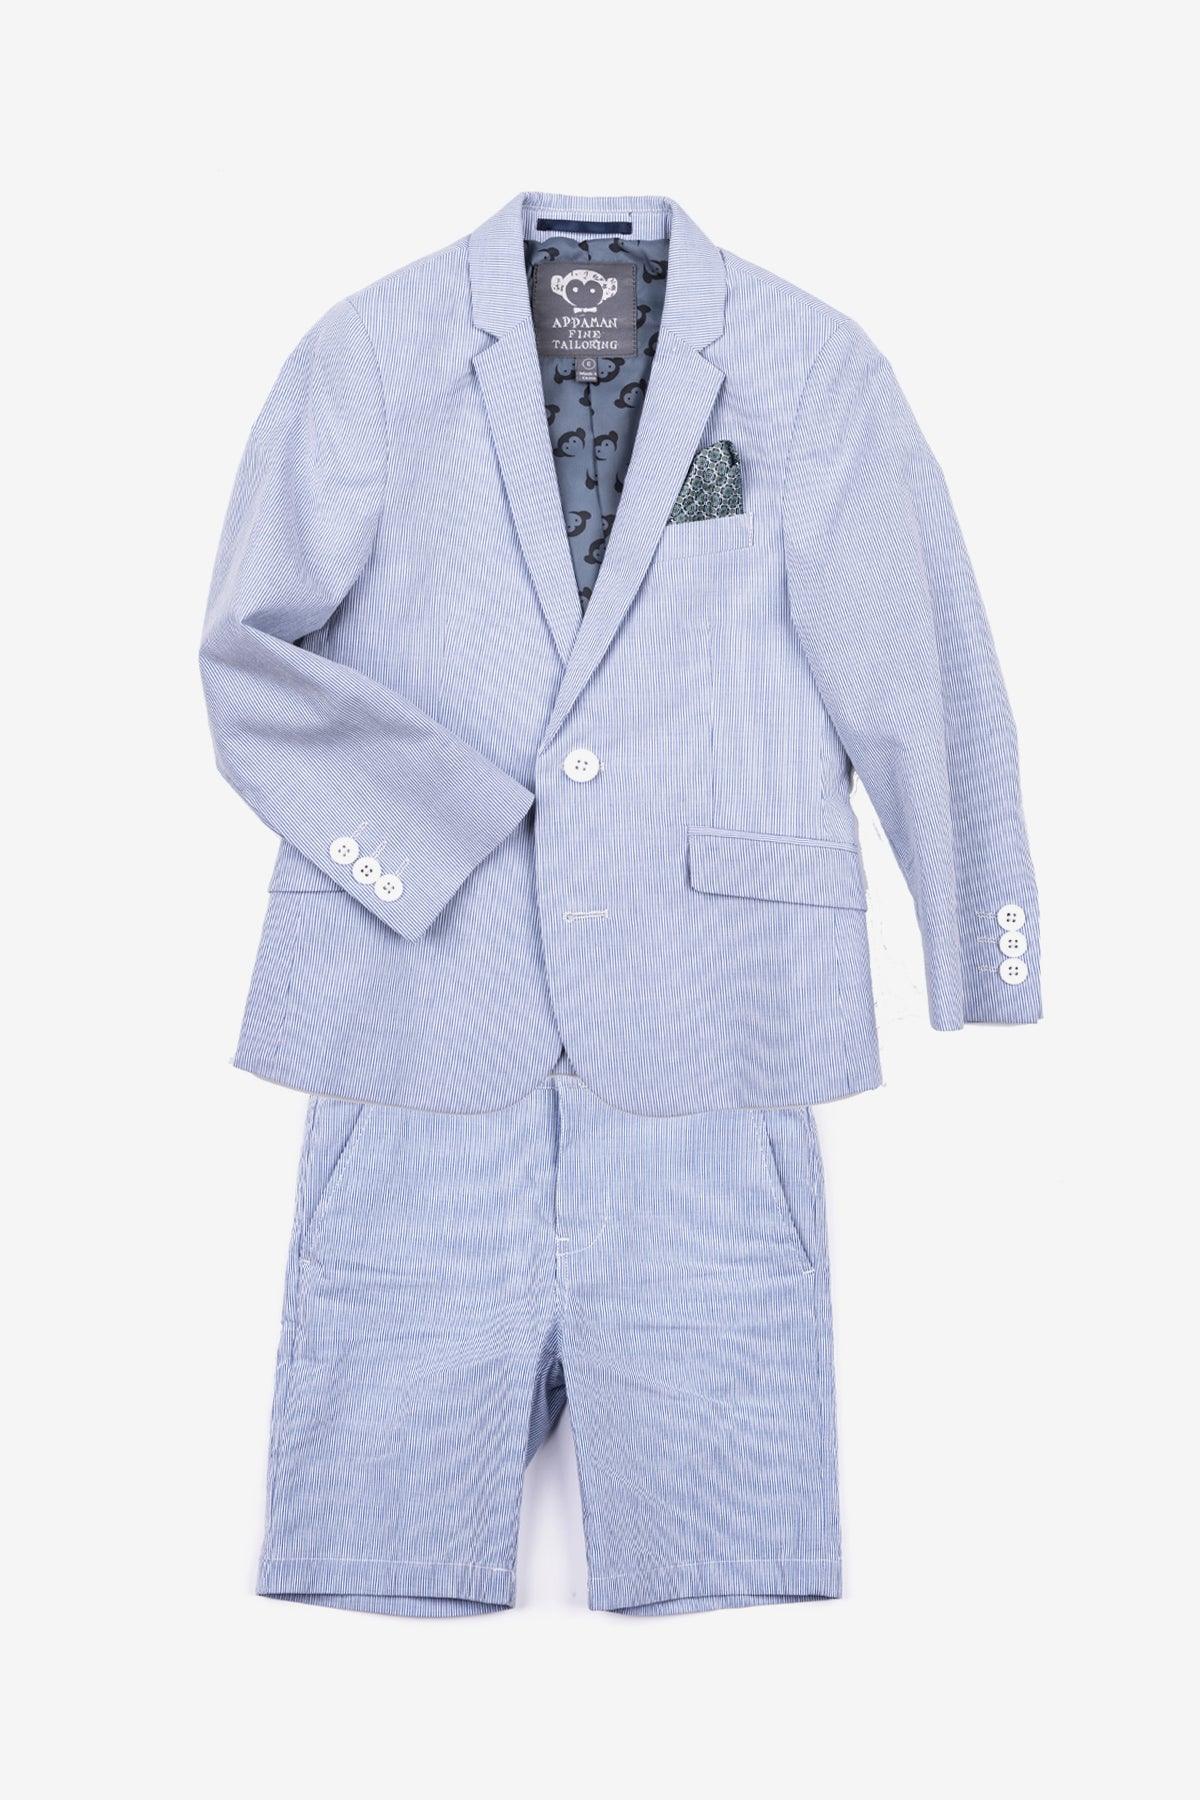 Appaman Boys Short Suit Set